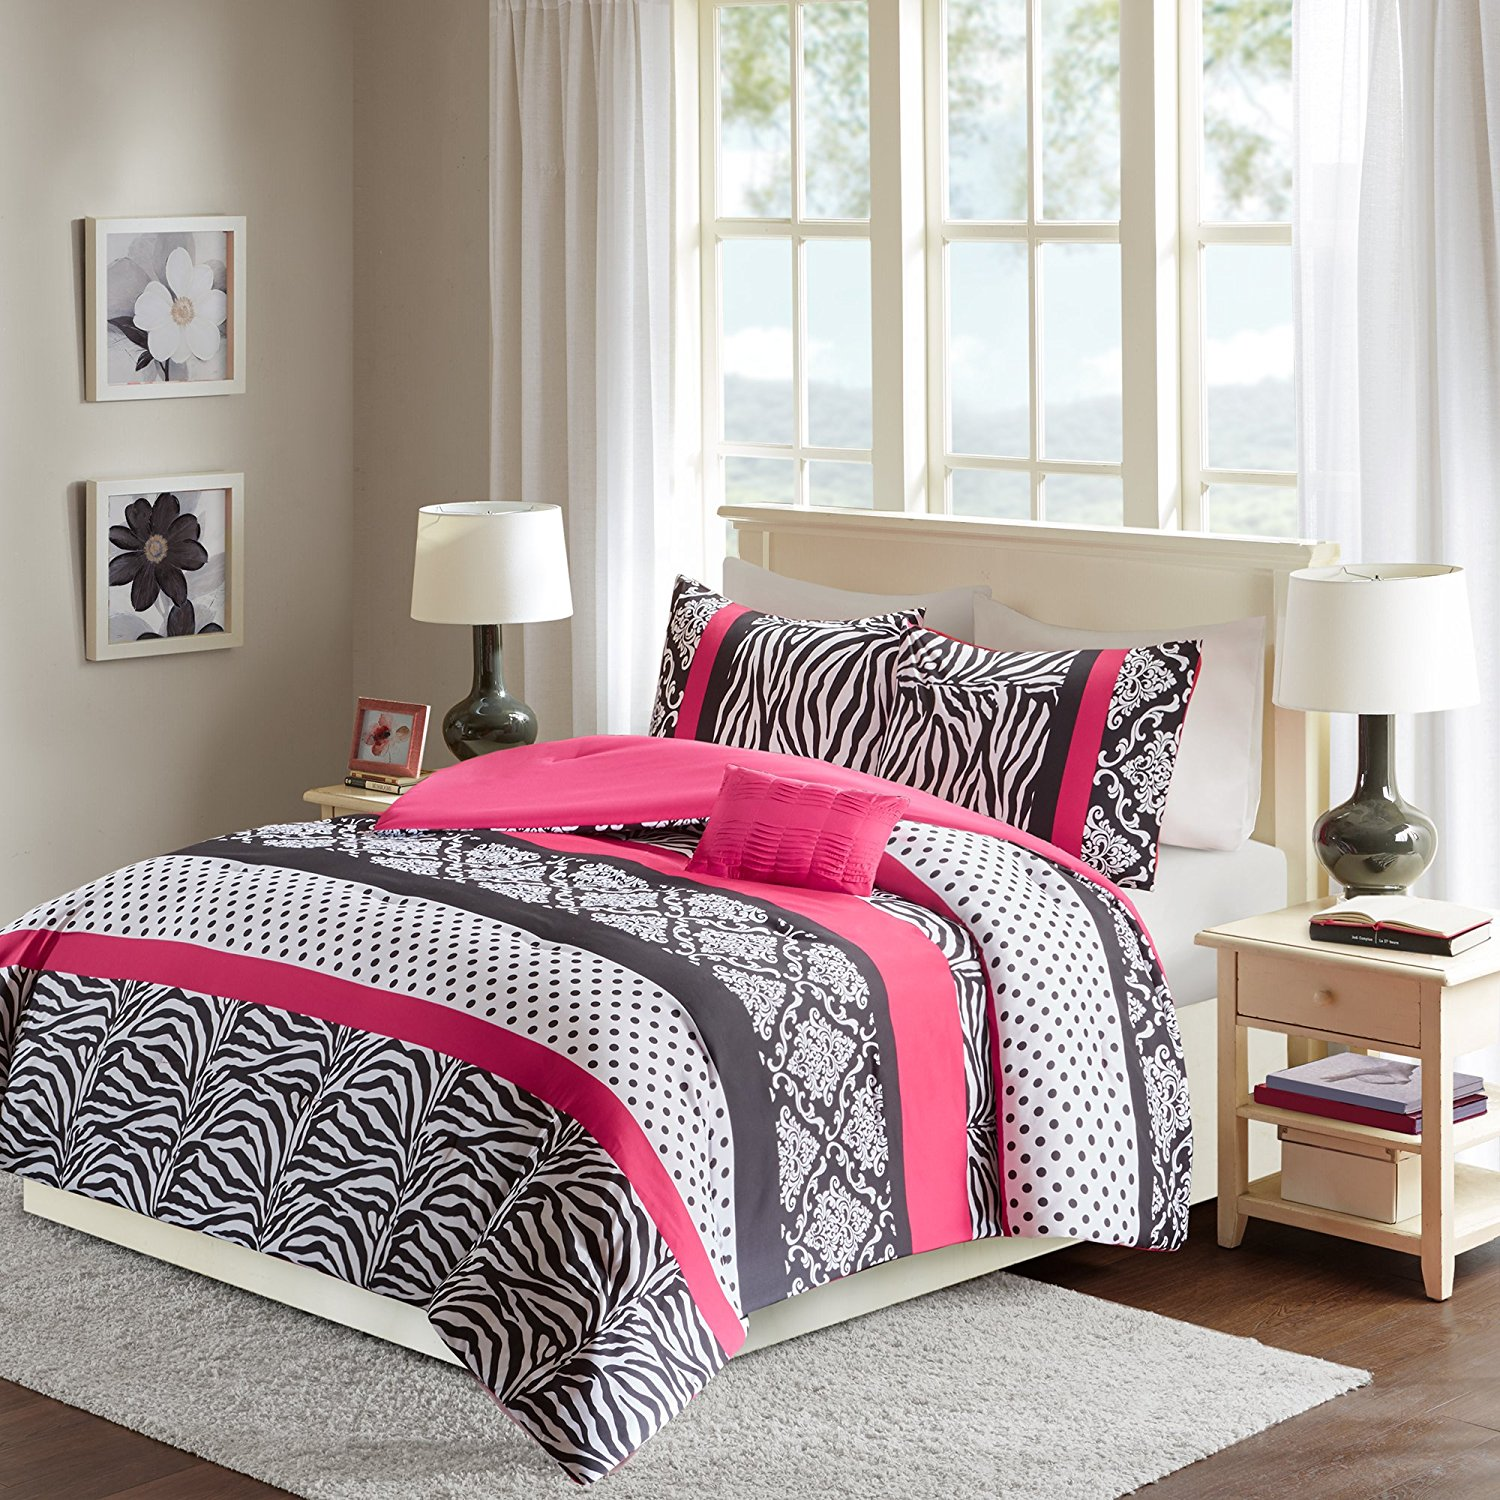 Pink And Black Zebra Bedding Achieving A Stylish Child S